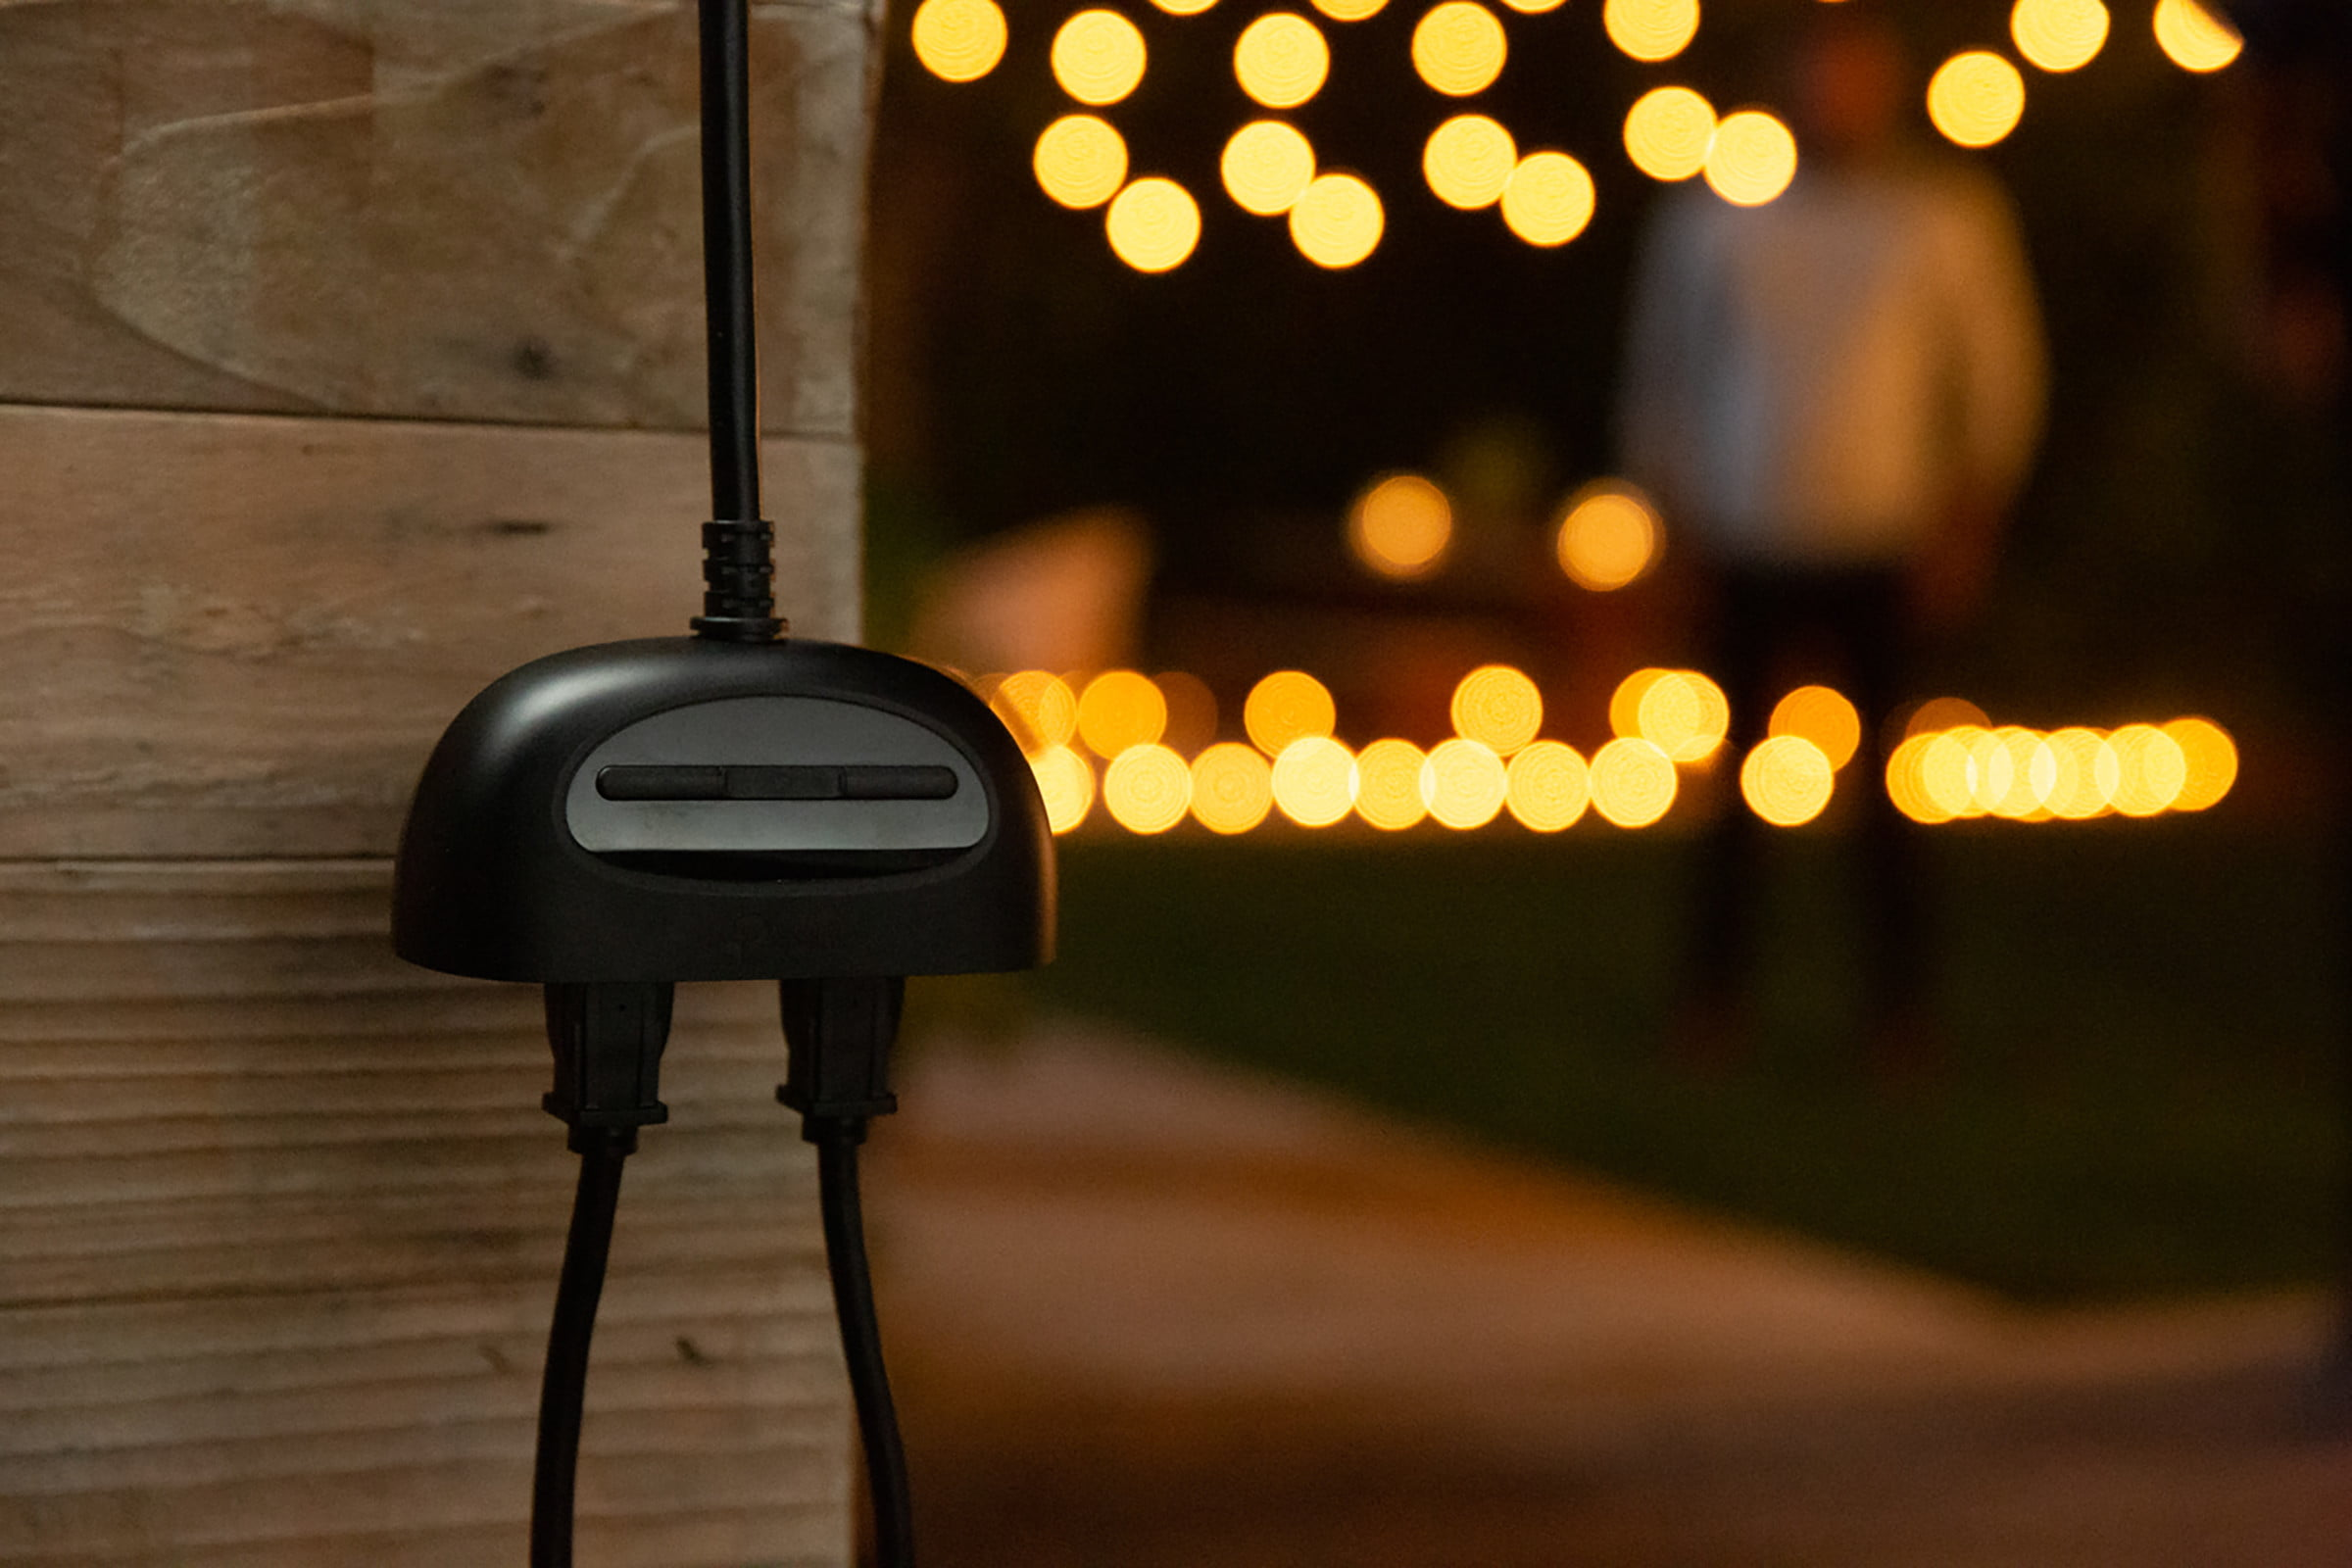 Power on and off: Kasa Outdoor Smart Plug by TP-Link brings weatherproof smarts